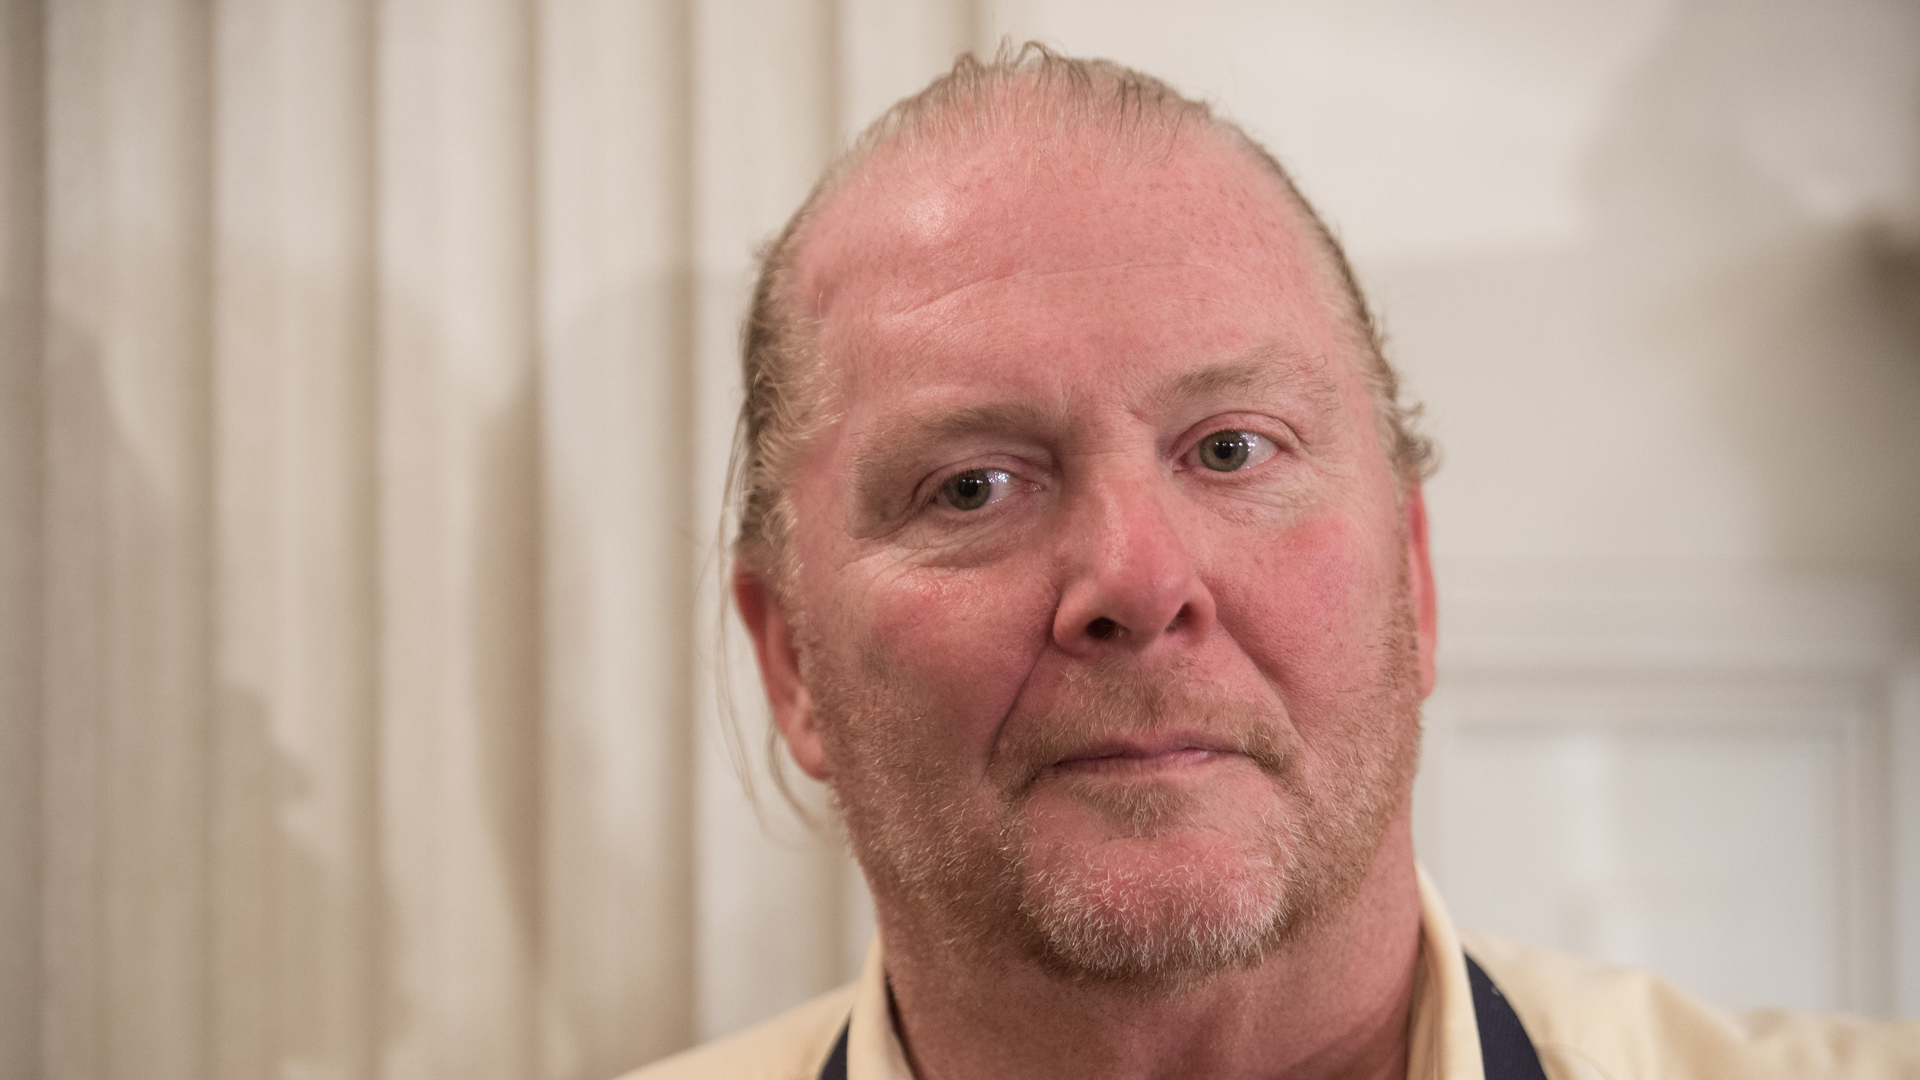 Chef Mario Batali looks on at the White House in Washington, DC, on Oct. 17, 2016, during a preview of the state dinner to be held the following day for Italian Prime Minister Matteo Renzi and his wife Agnese Landini. (Credit: Nicholas Kamm/AFP/Getty Images)